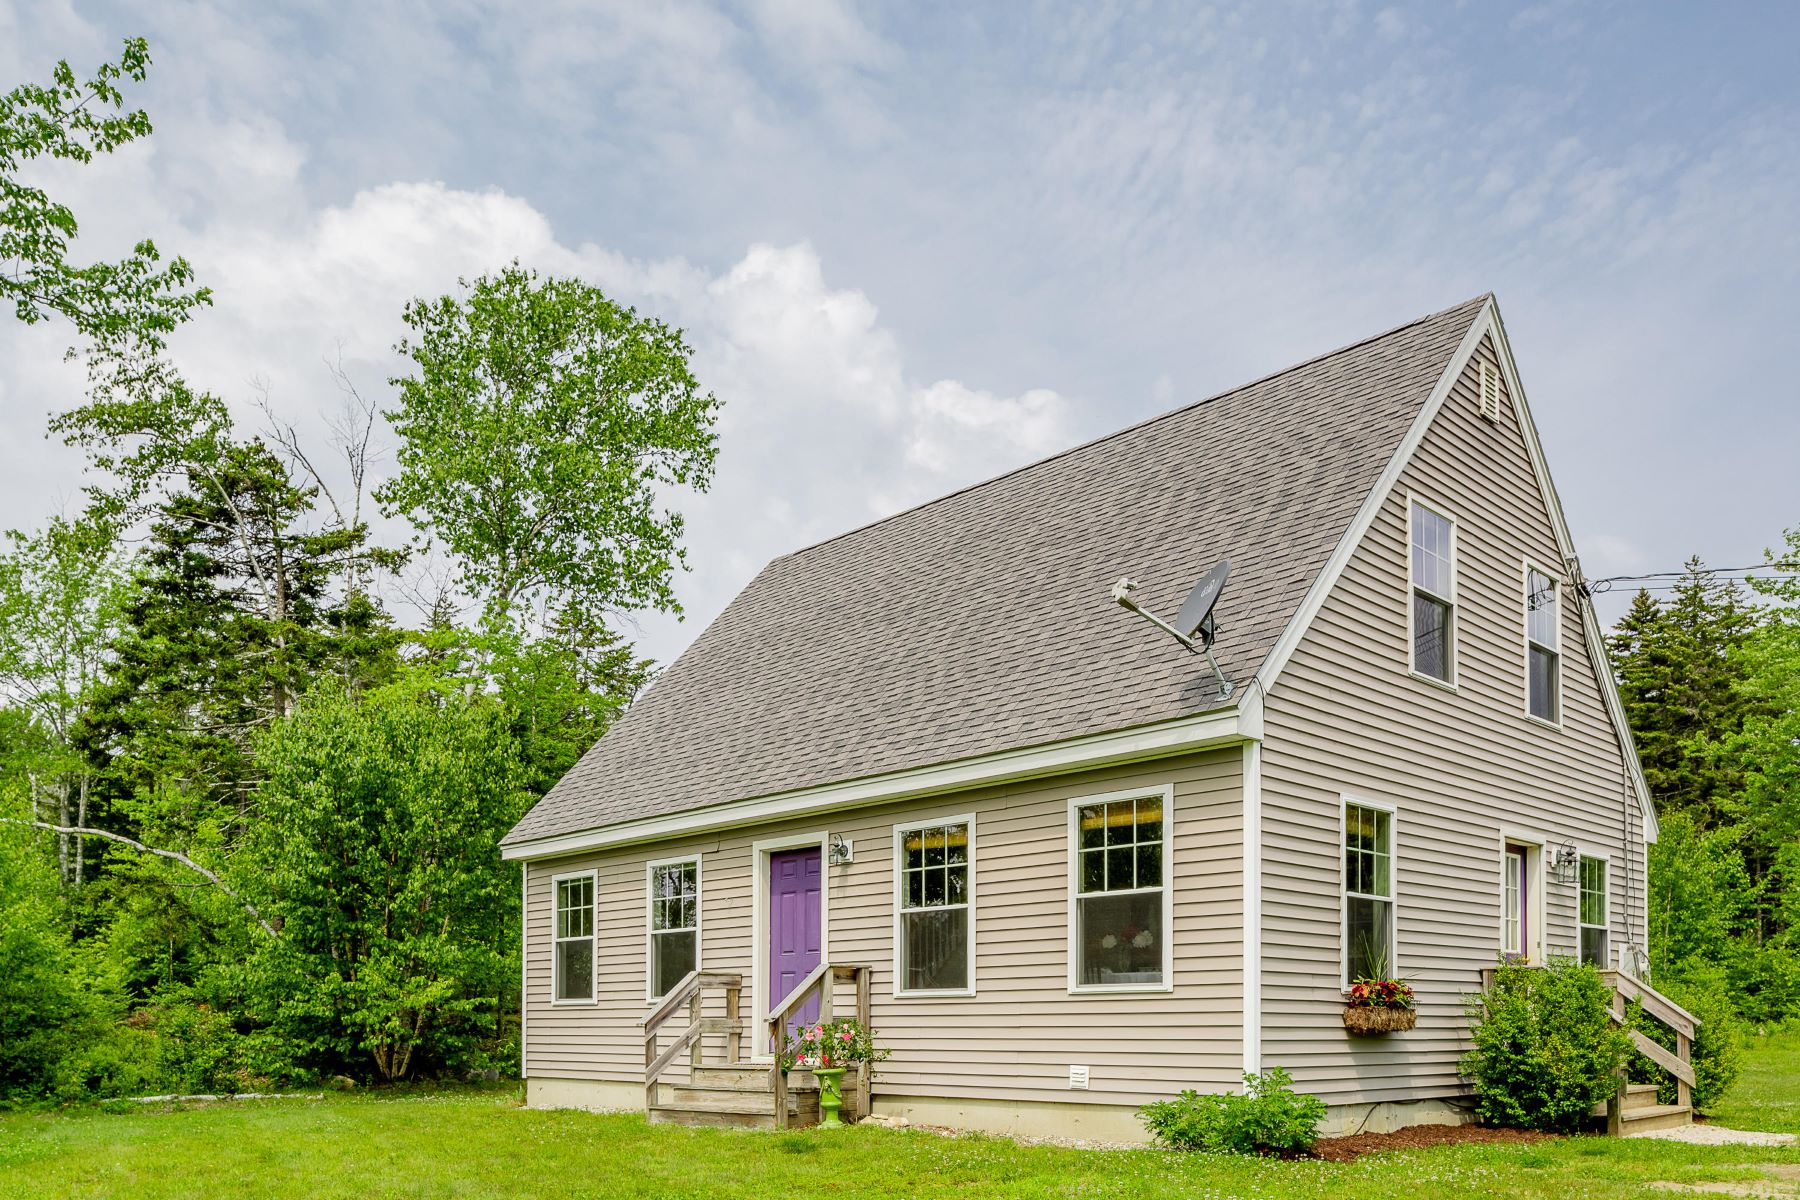 Single Family Homes for Active at 17 Autumn Marsh Road St. George, Maine 04860 United States